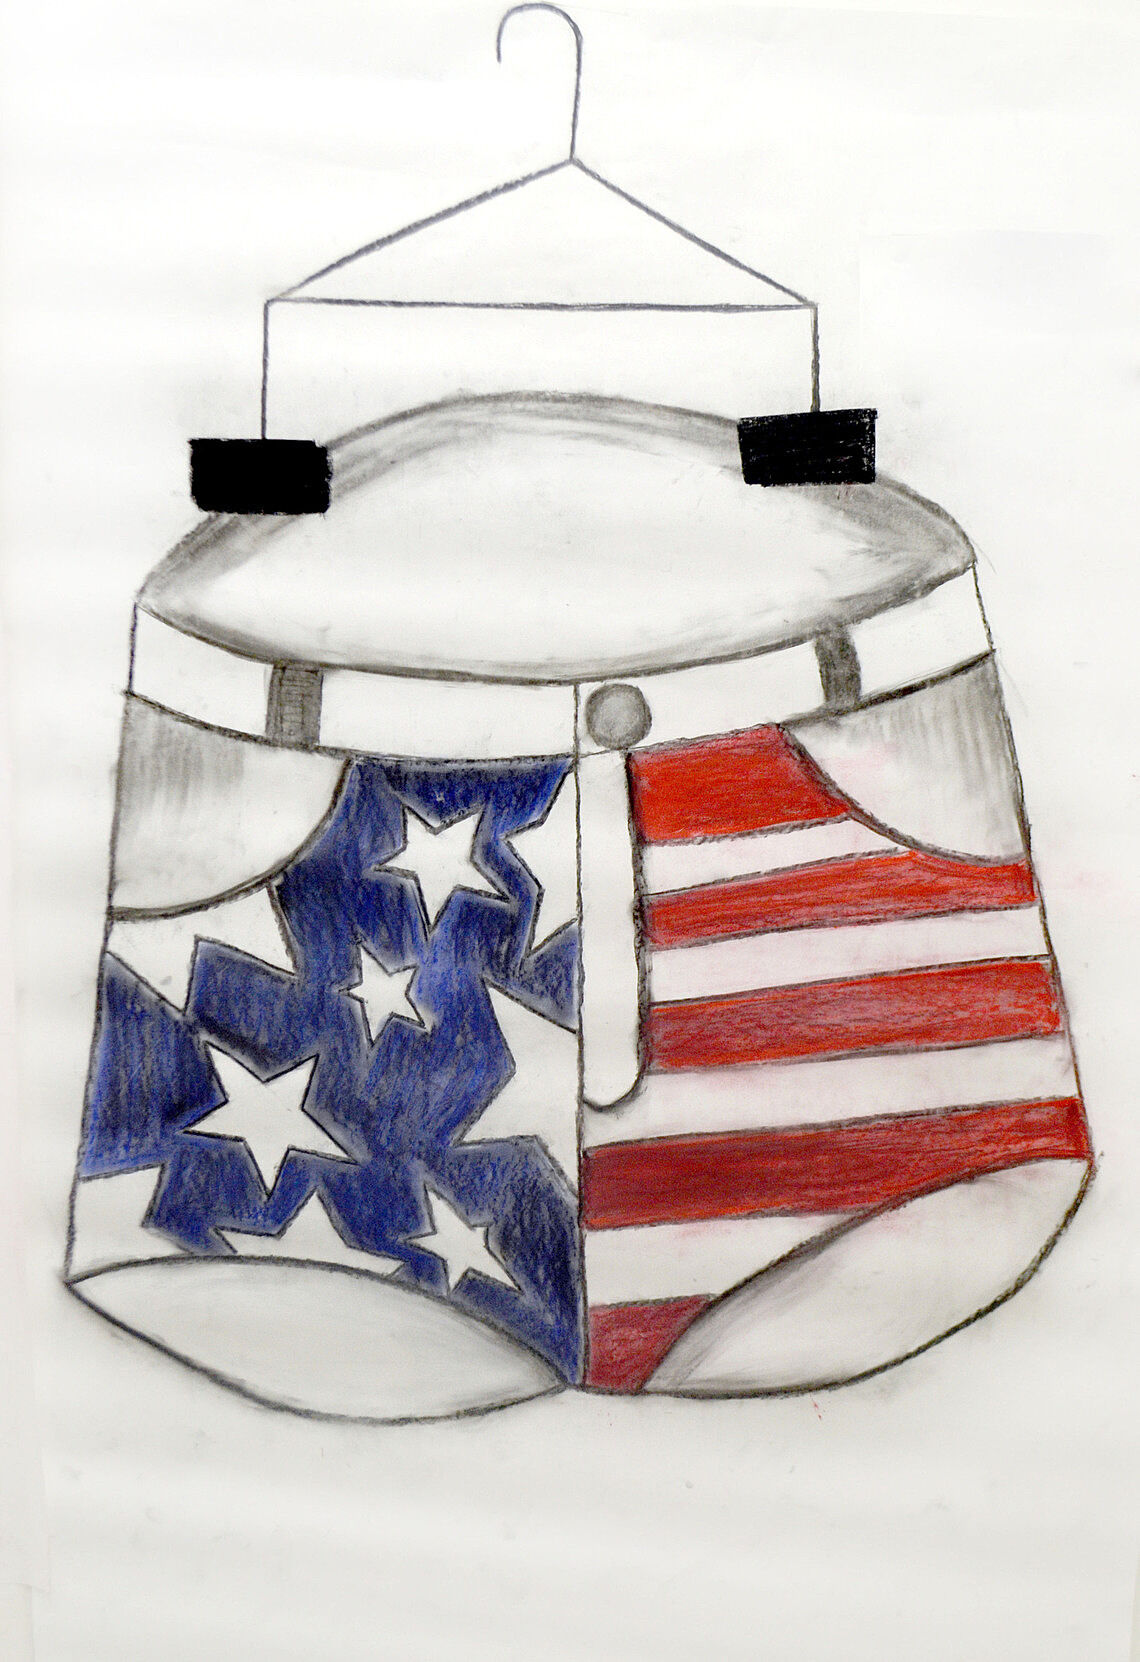 Drawing of a pair of shorts with an American flag on it.